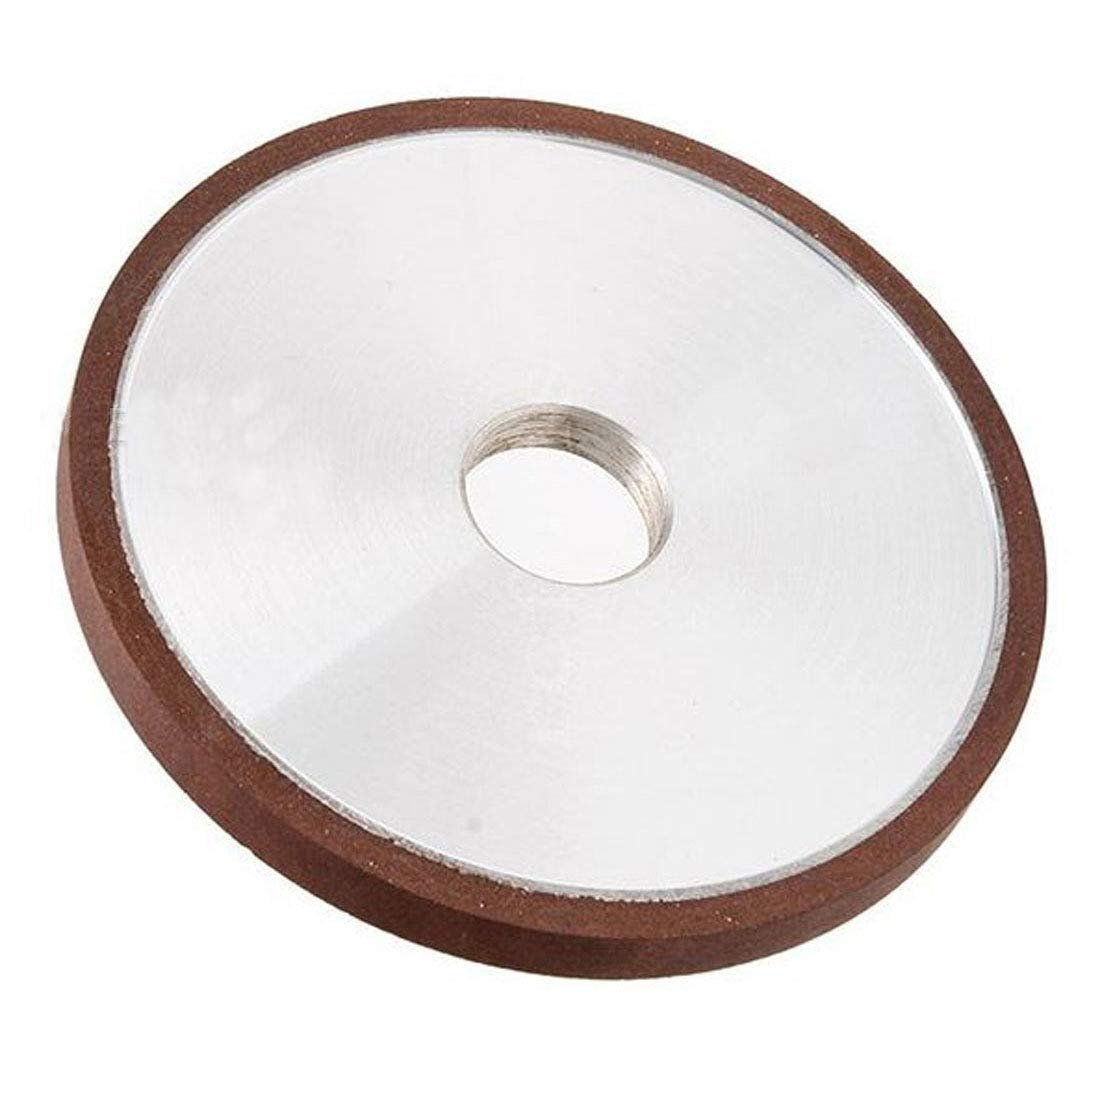 ees.Diamond Grinding Wheel Grit 400 Cutter Grinder Tool for Carbide 4'' 20mm / 100mm